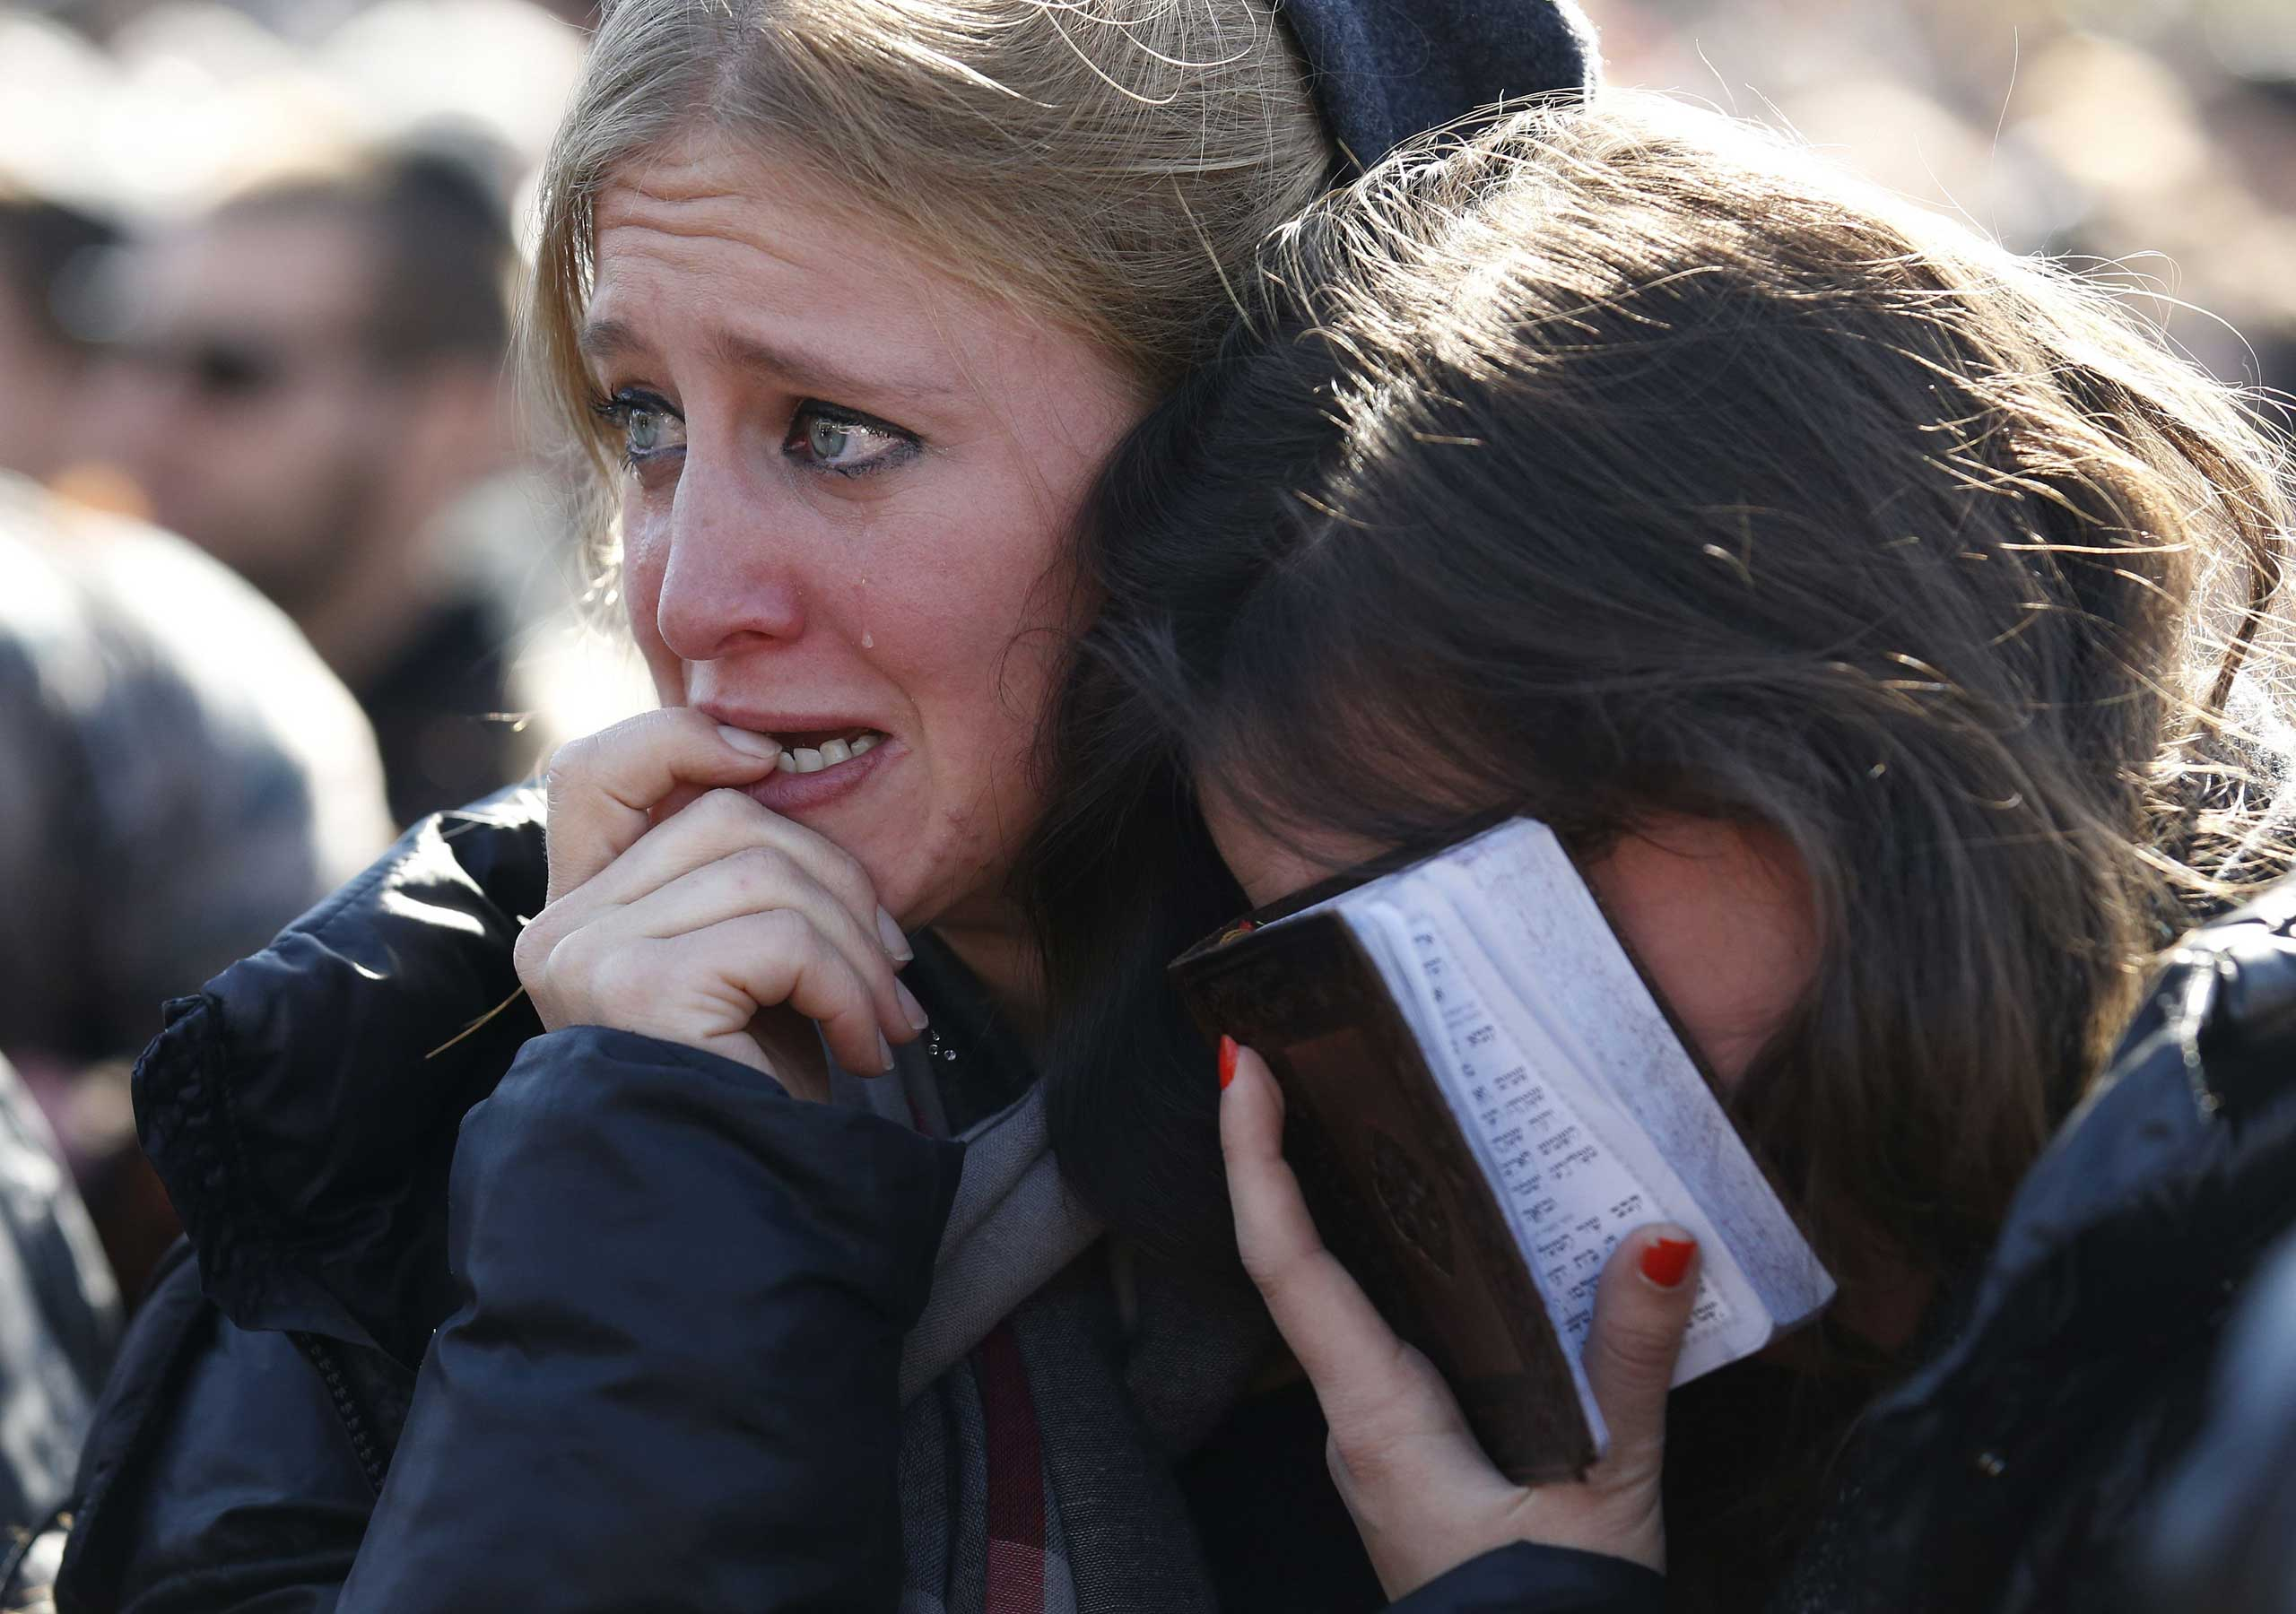 Mourners react during the funeral of four Jews, who were killed in last week's attack on a kosher supermarket in Paris, while attending the service in Jerusalem on Jan. 13, 2015.